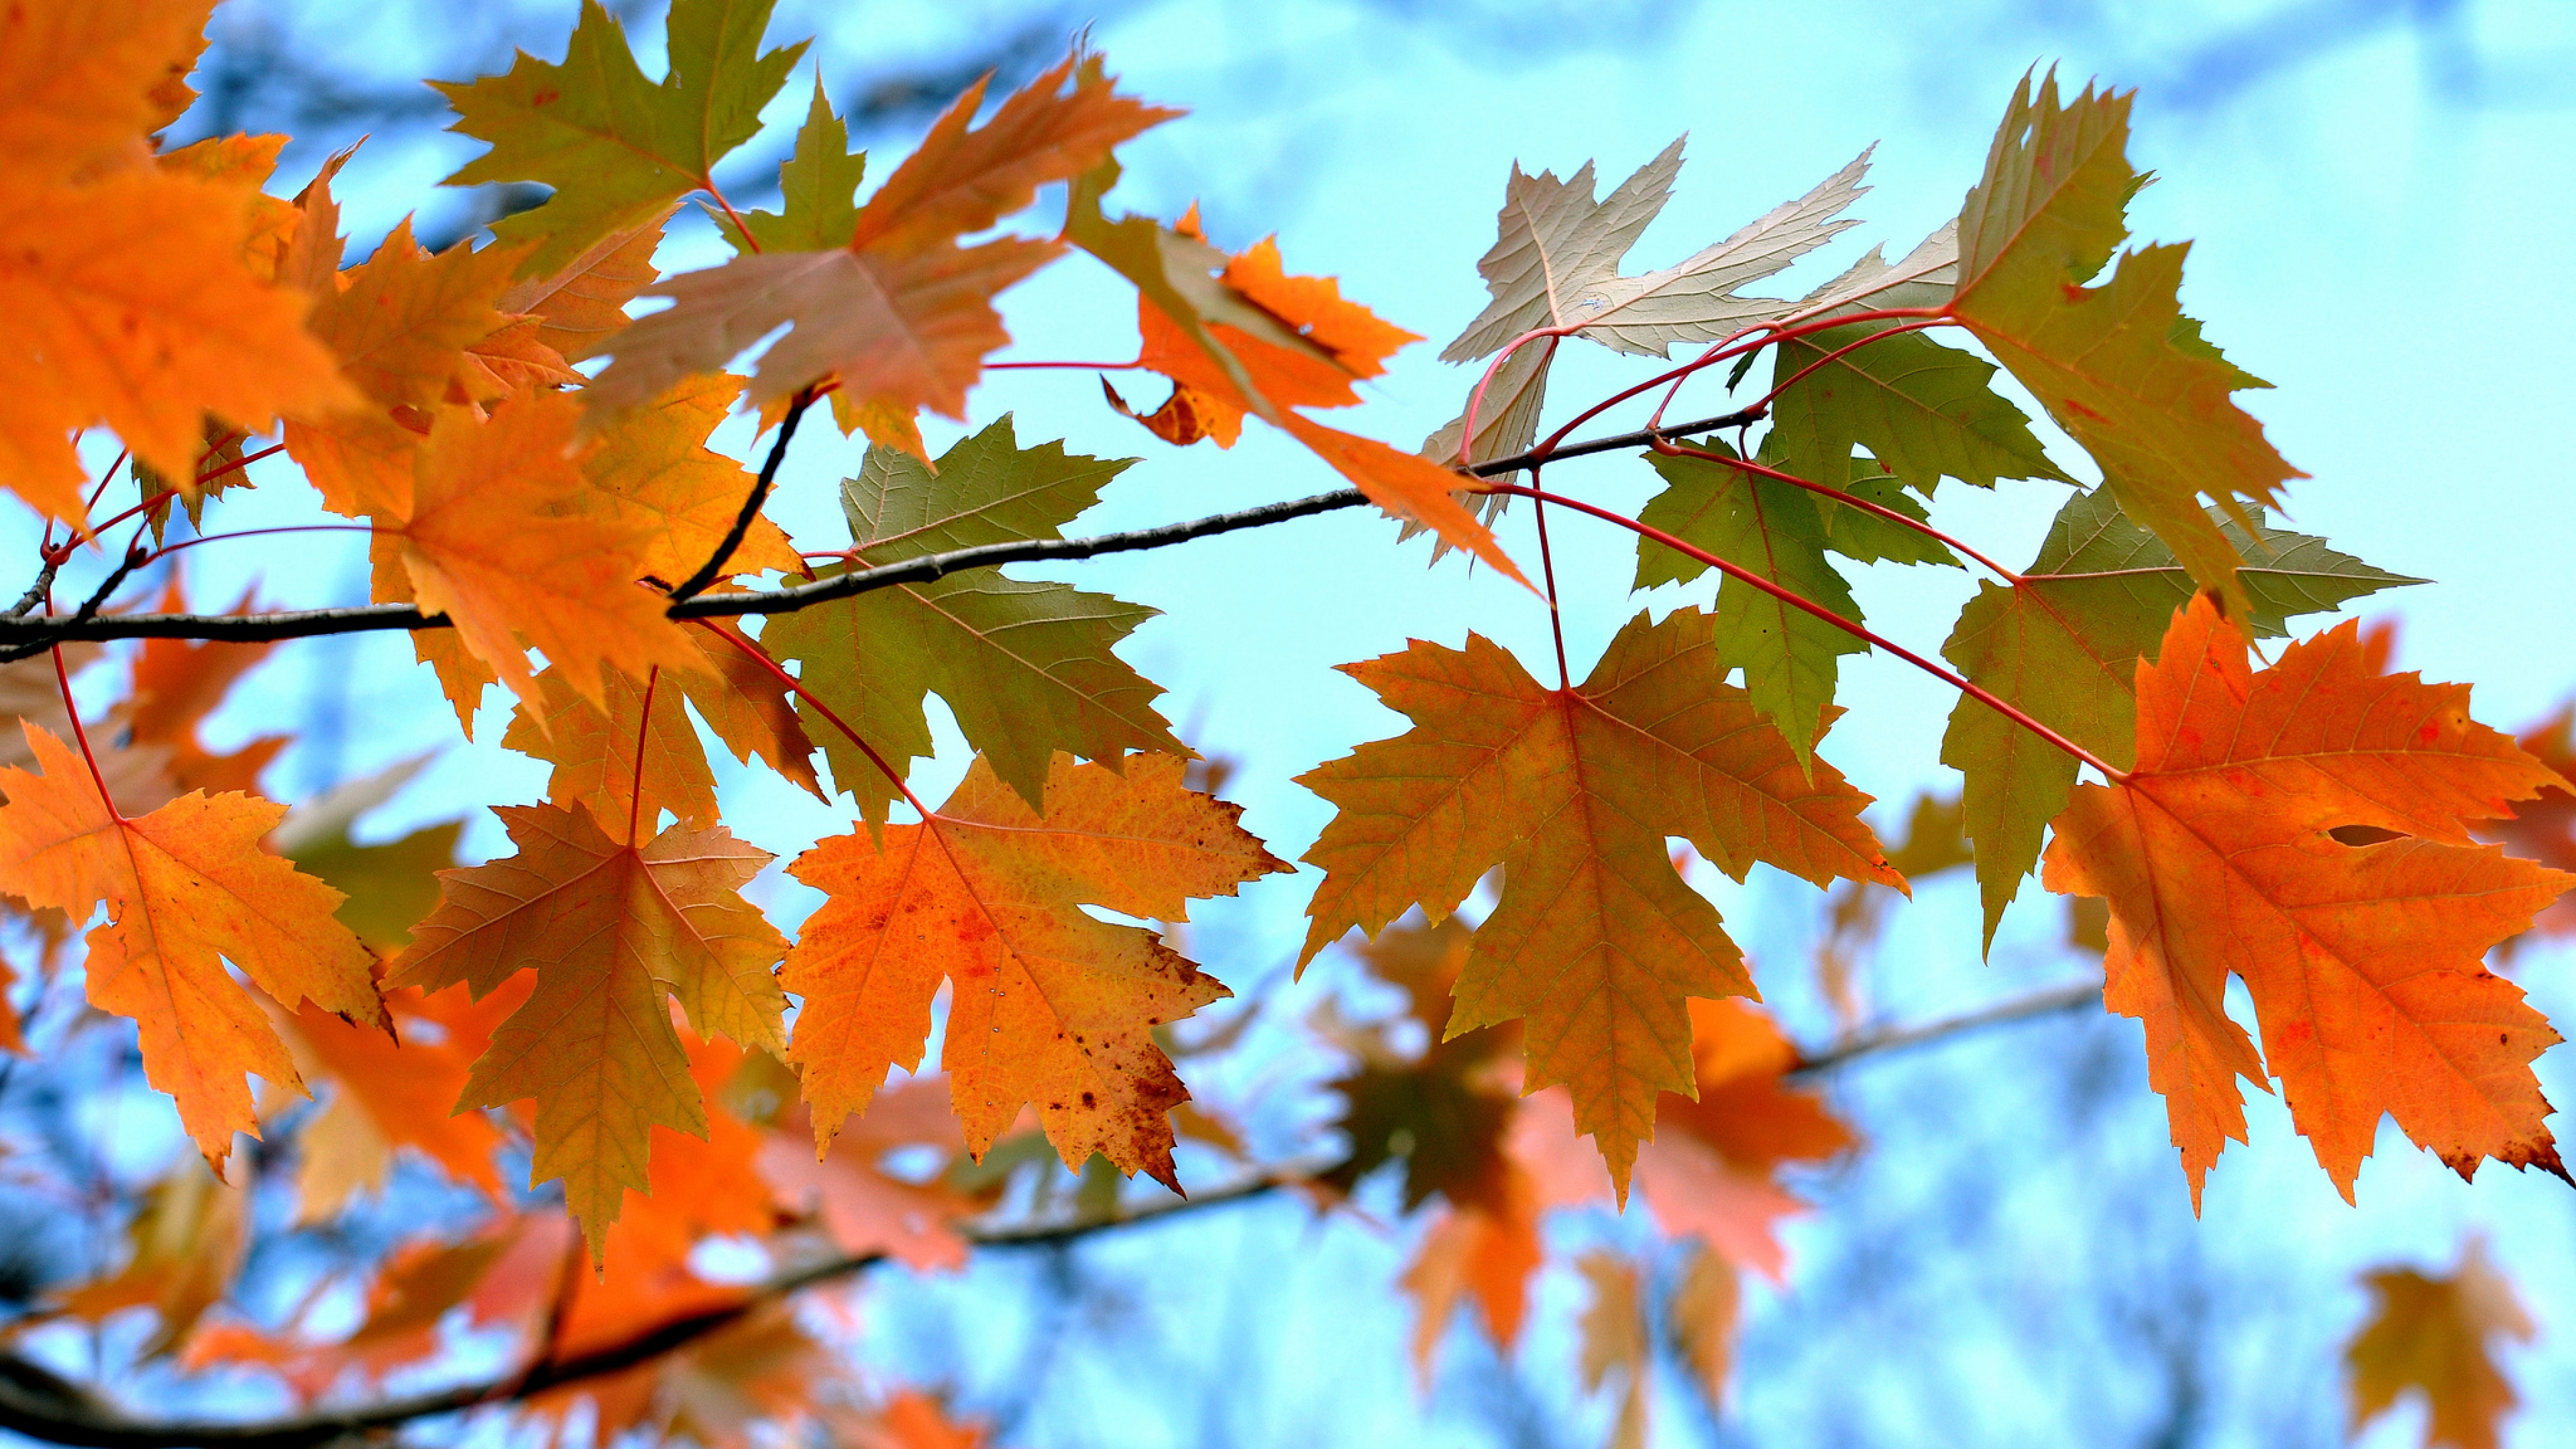 maple leaves branches 4k 1540131092 - Maple Leaves Branches 4k - nature wallpapers, leaves wallpapers